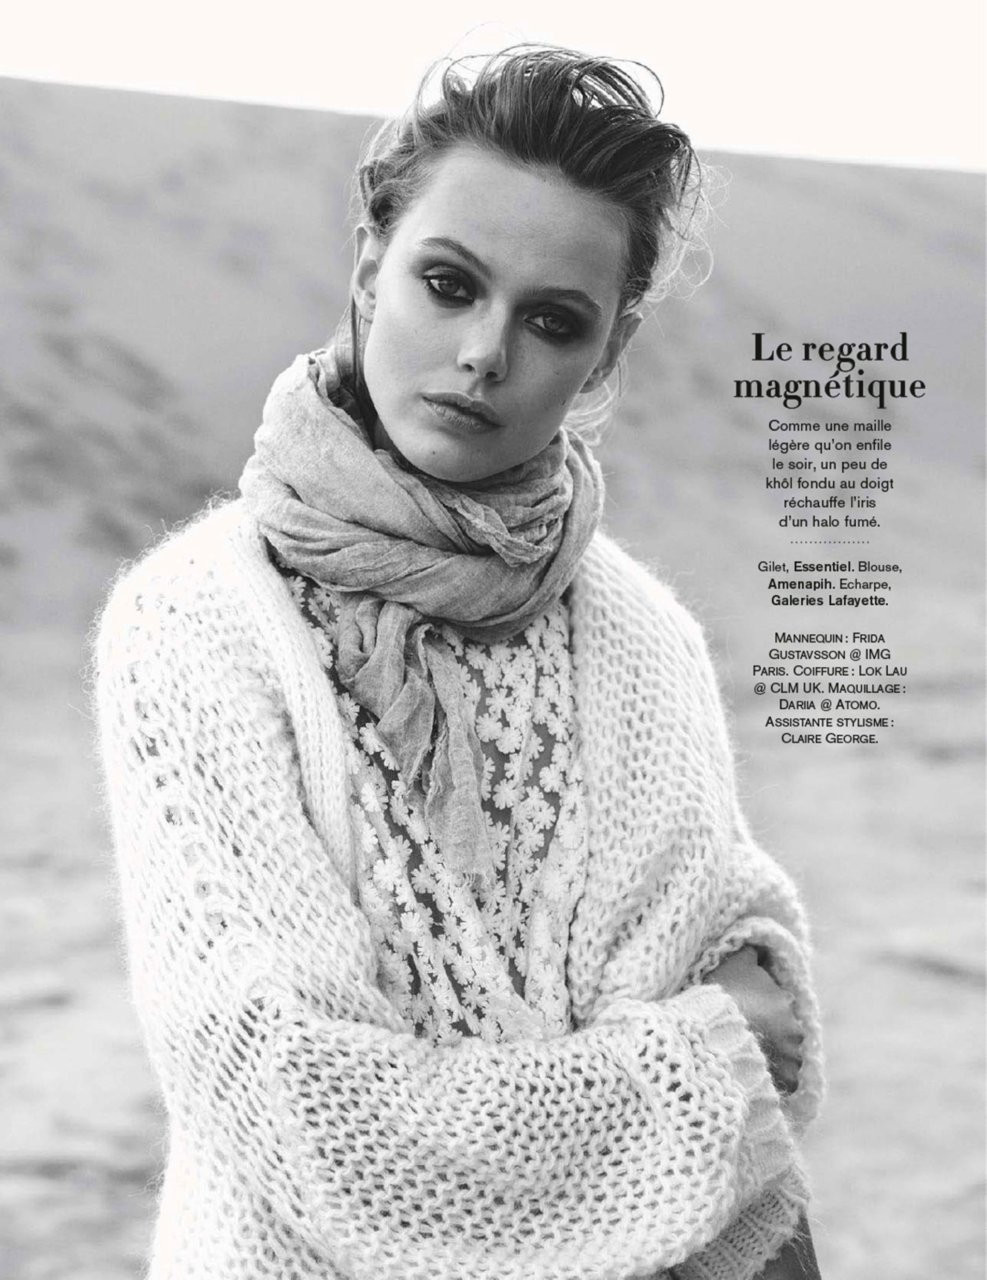 Frida Gustavsson Topless 23 TheFappening.nu